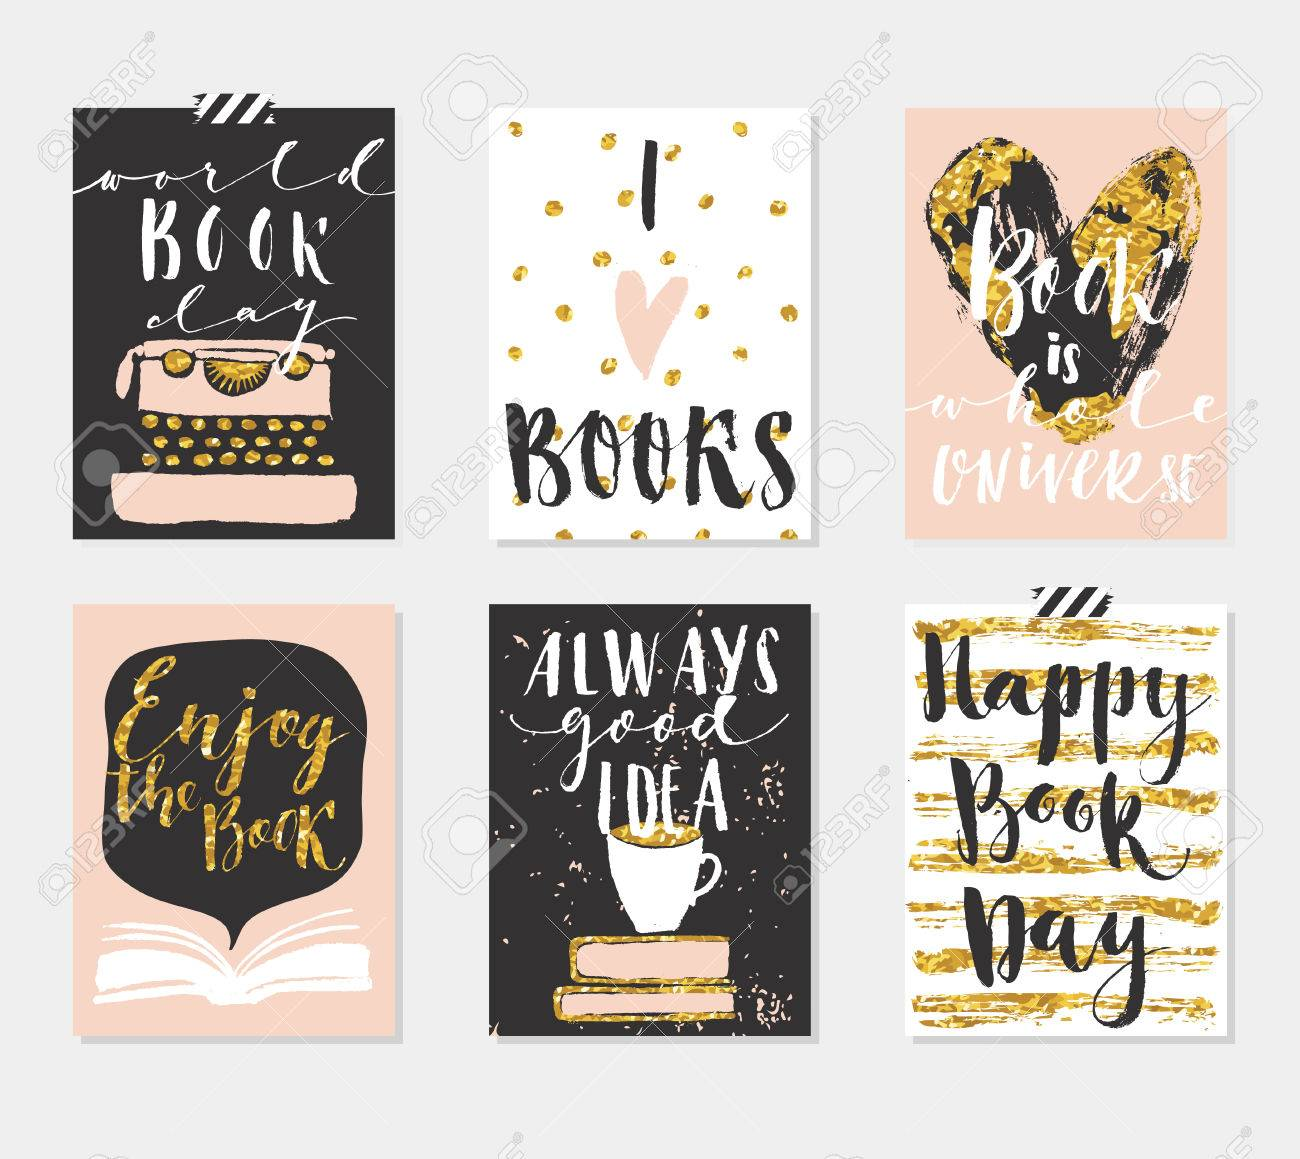 happy book day s 6 gold cards collection set of card templates